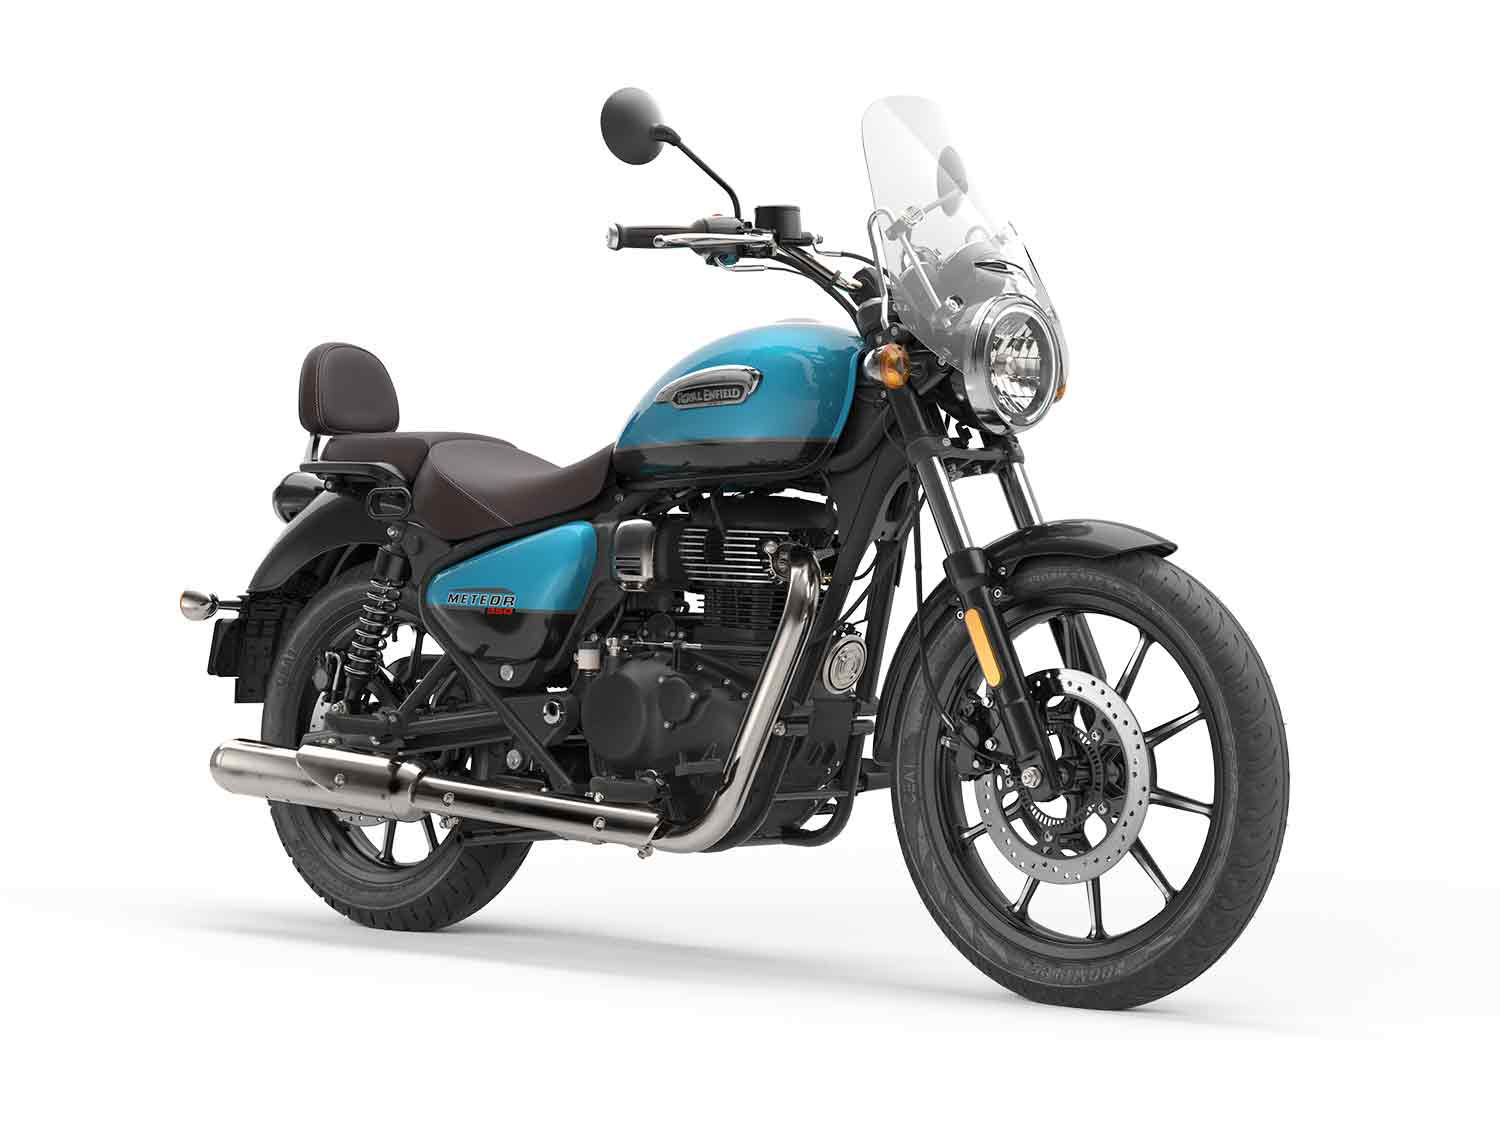 The Royal Enfield Meteor in Supernova Blue.